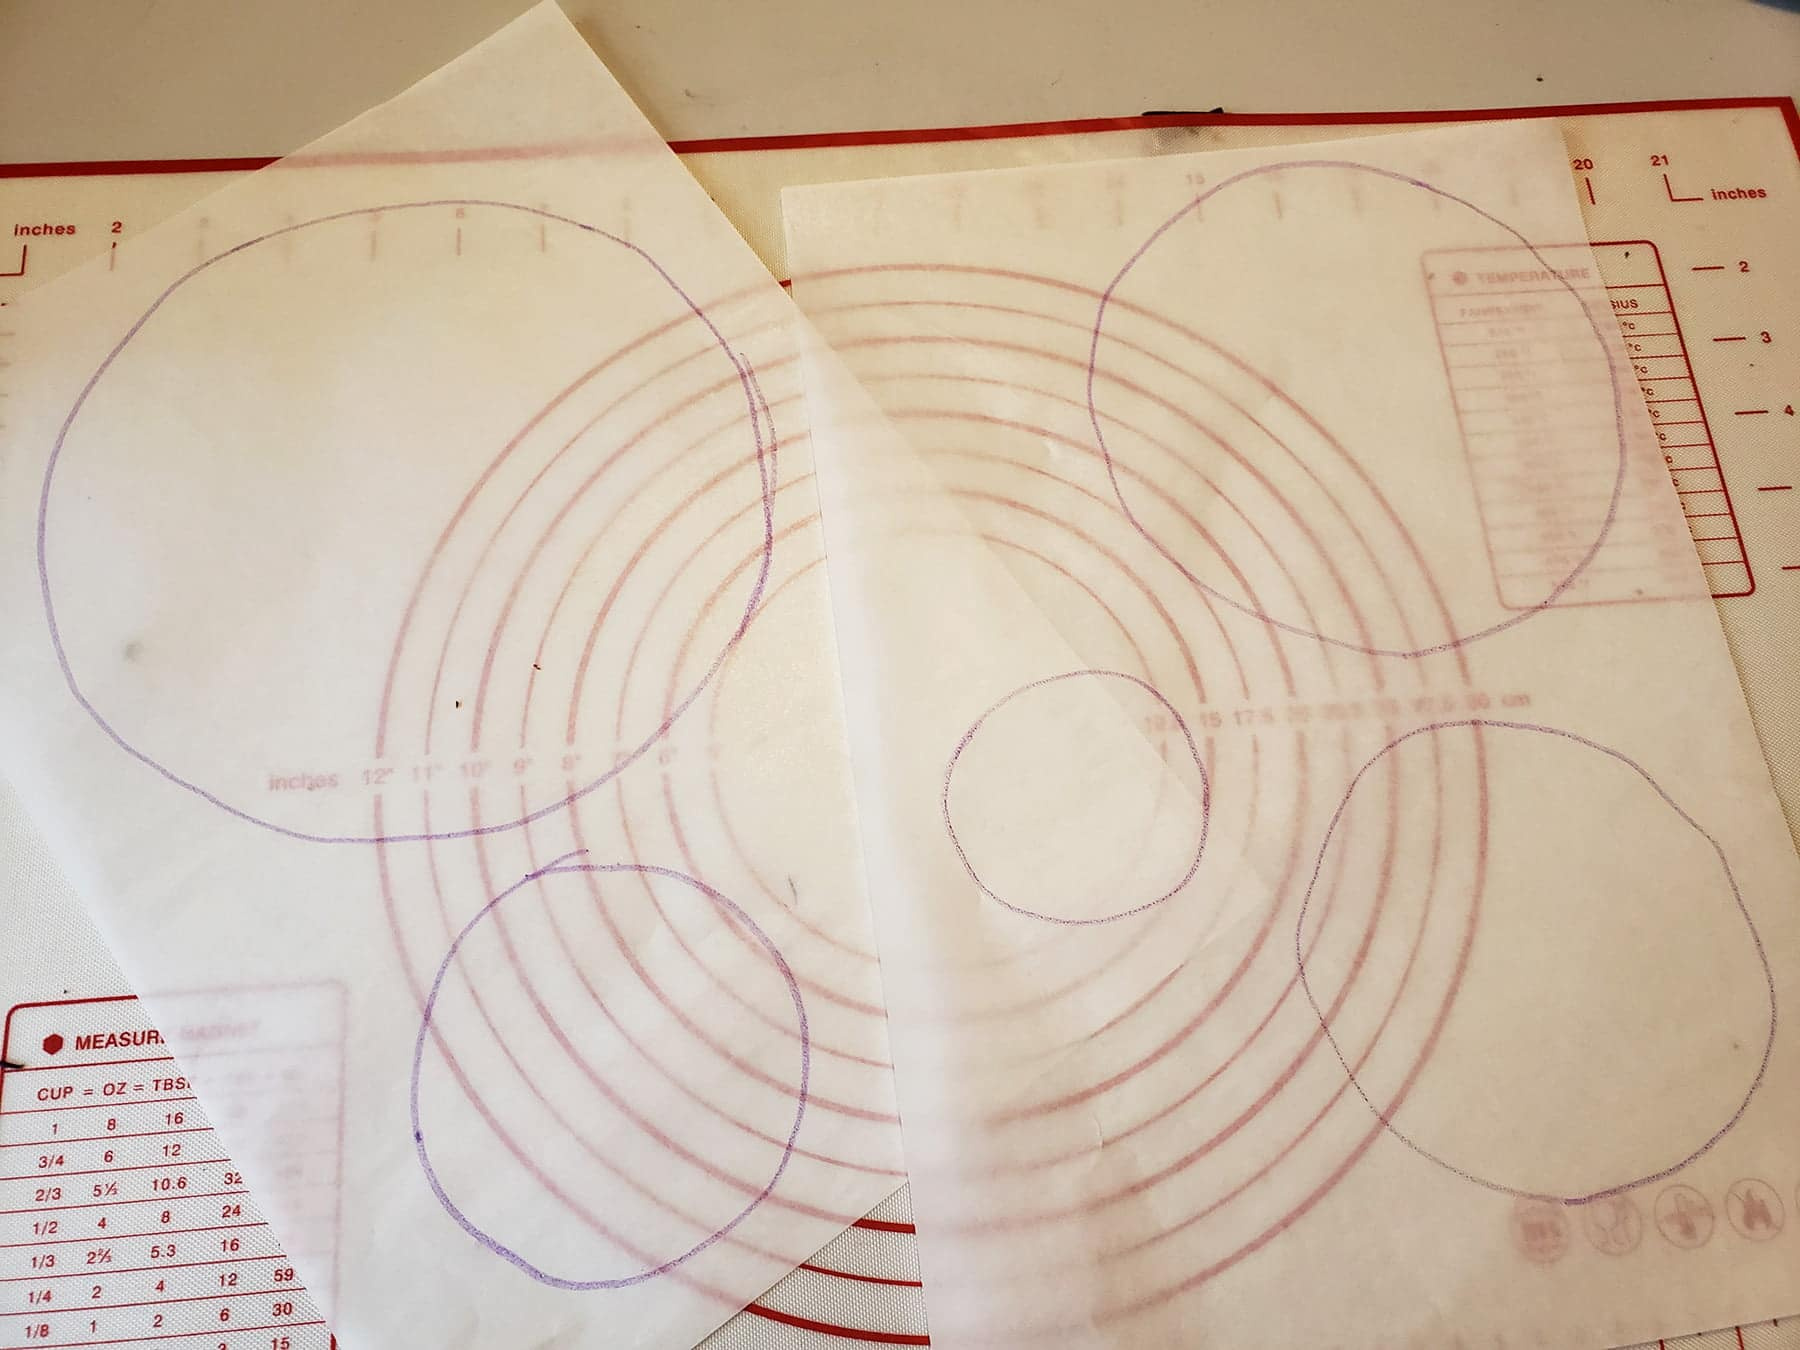 Two sheets of parchment paper are positioned over a circle drawing template.